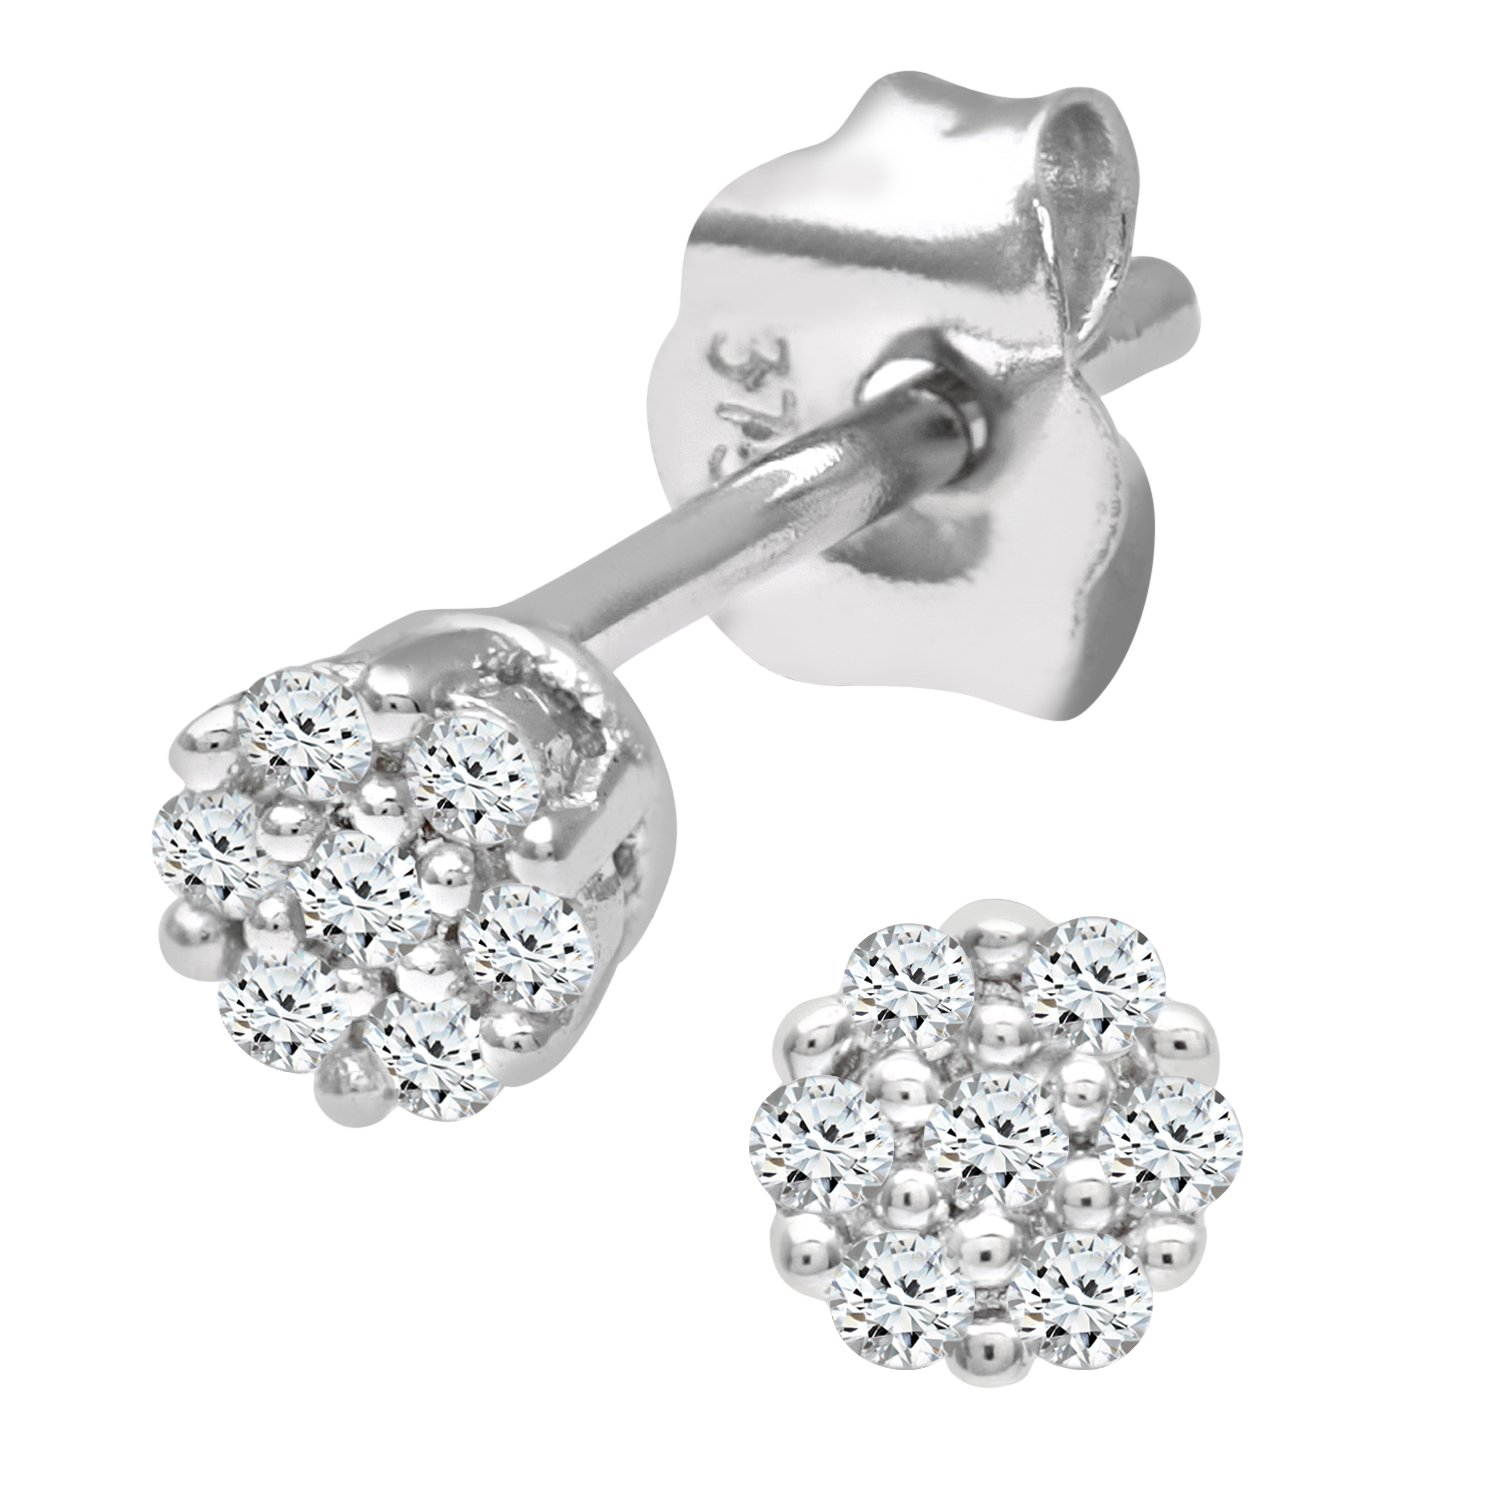 peretti constrain diamonds wid m fmt silver id sterling yard ed the jewelry elsa earrings by in diamond fit hei mcwq